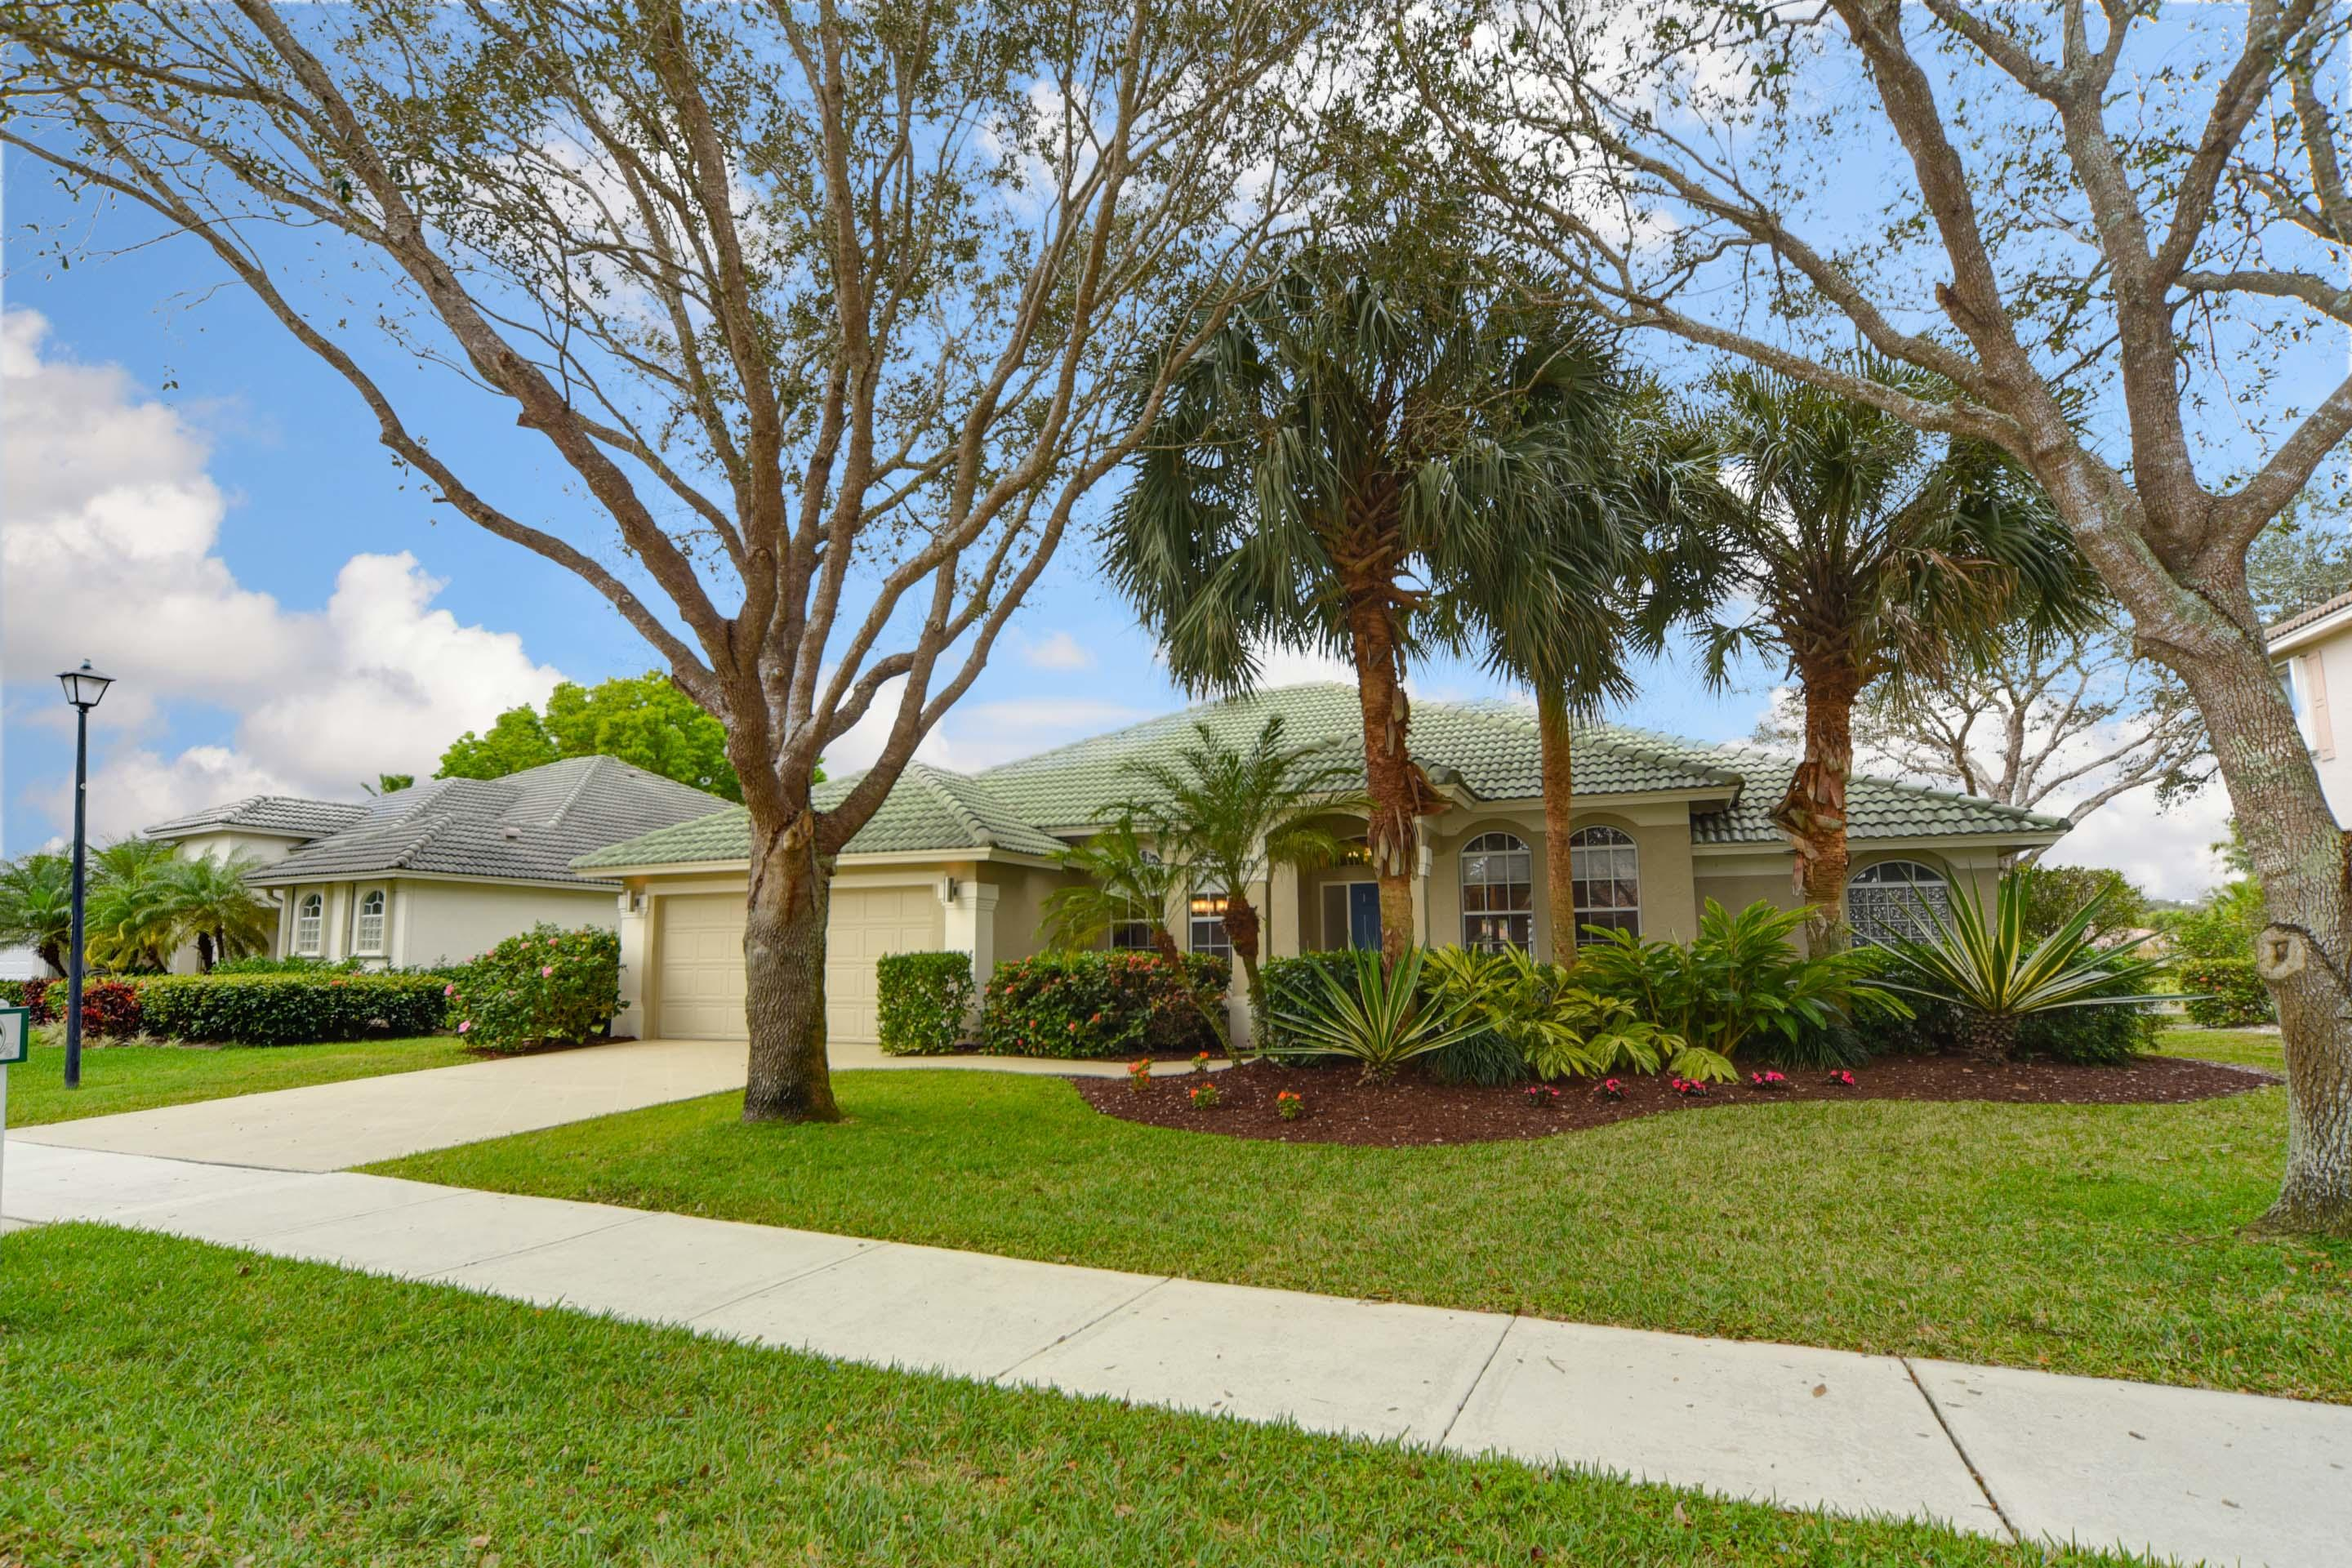 511 Cocoplum Drive, Jupiter, Florida 33458, 4 Bedrooms Bedrooms, ,2 BathroomsBathrooms,Single Family,For Sale,EGRET LANDING AT JUPITER,Cocoplum,RX-10504447